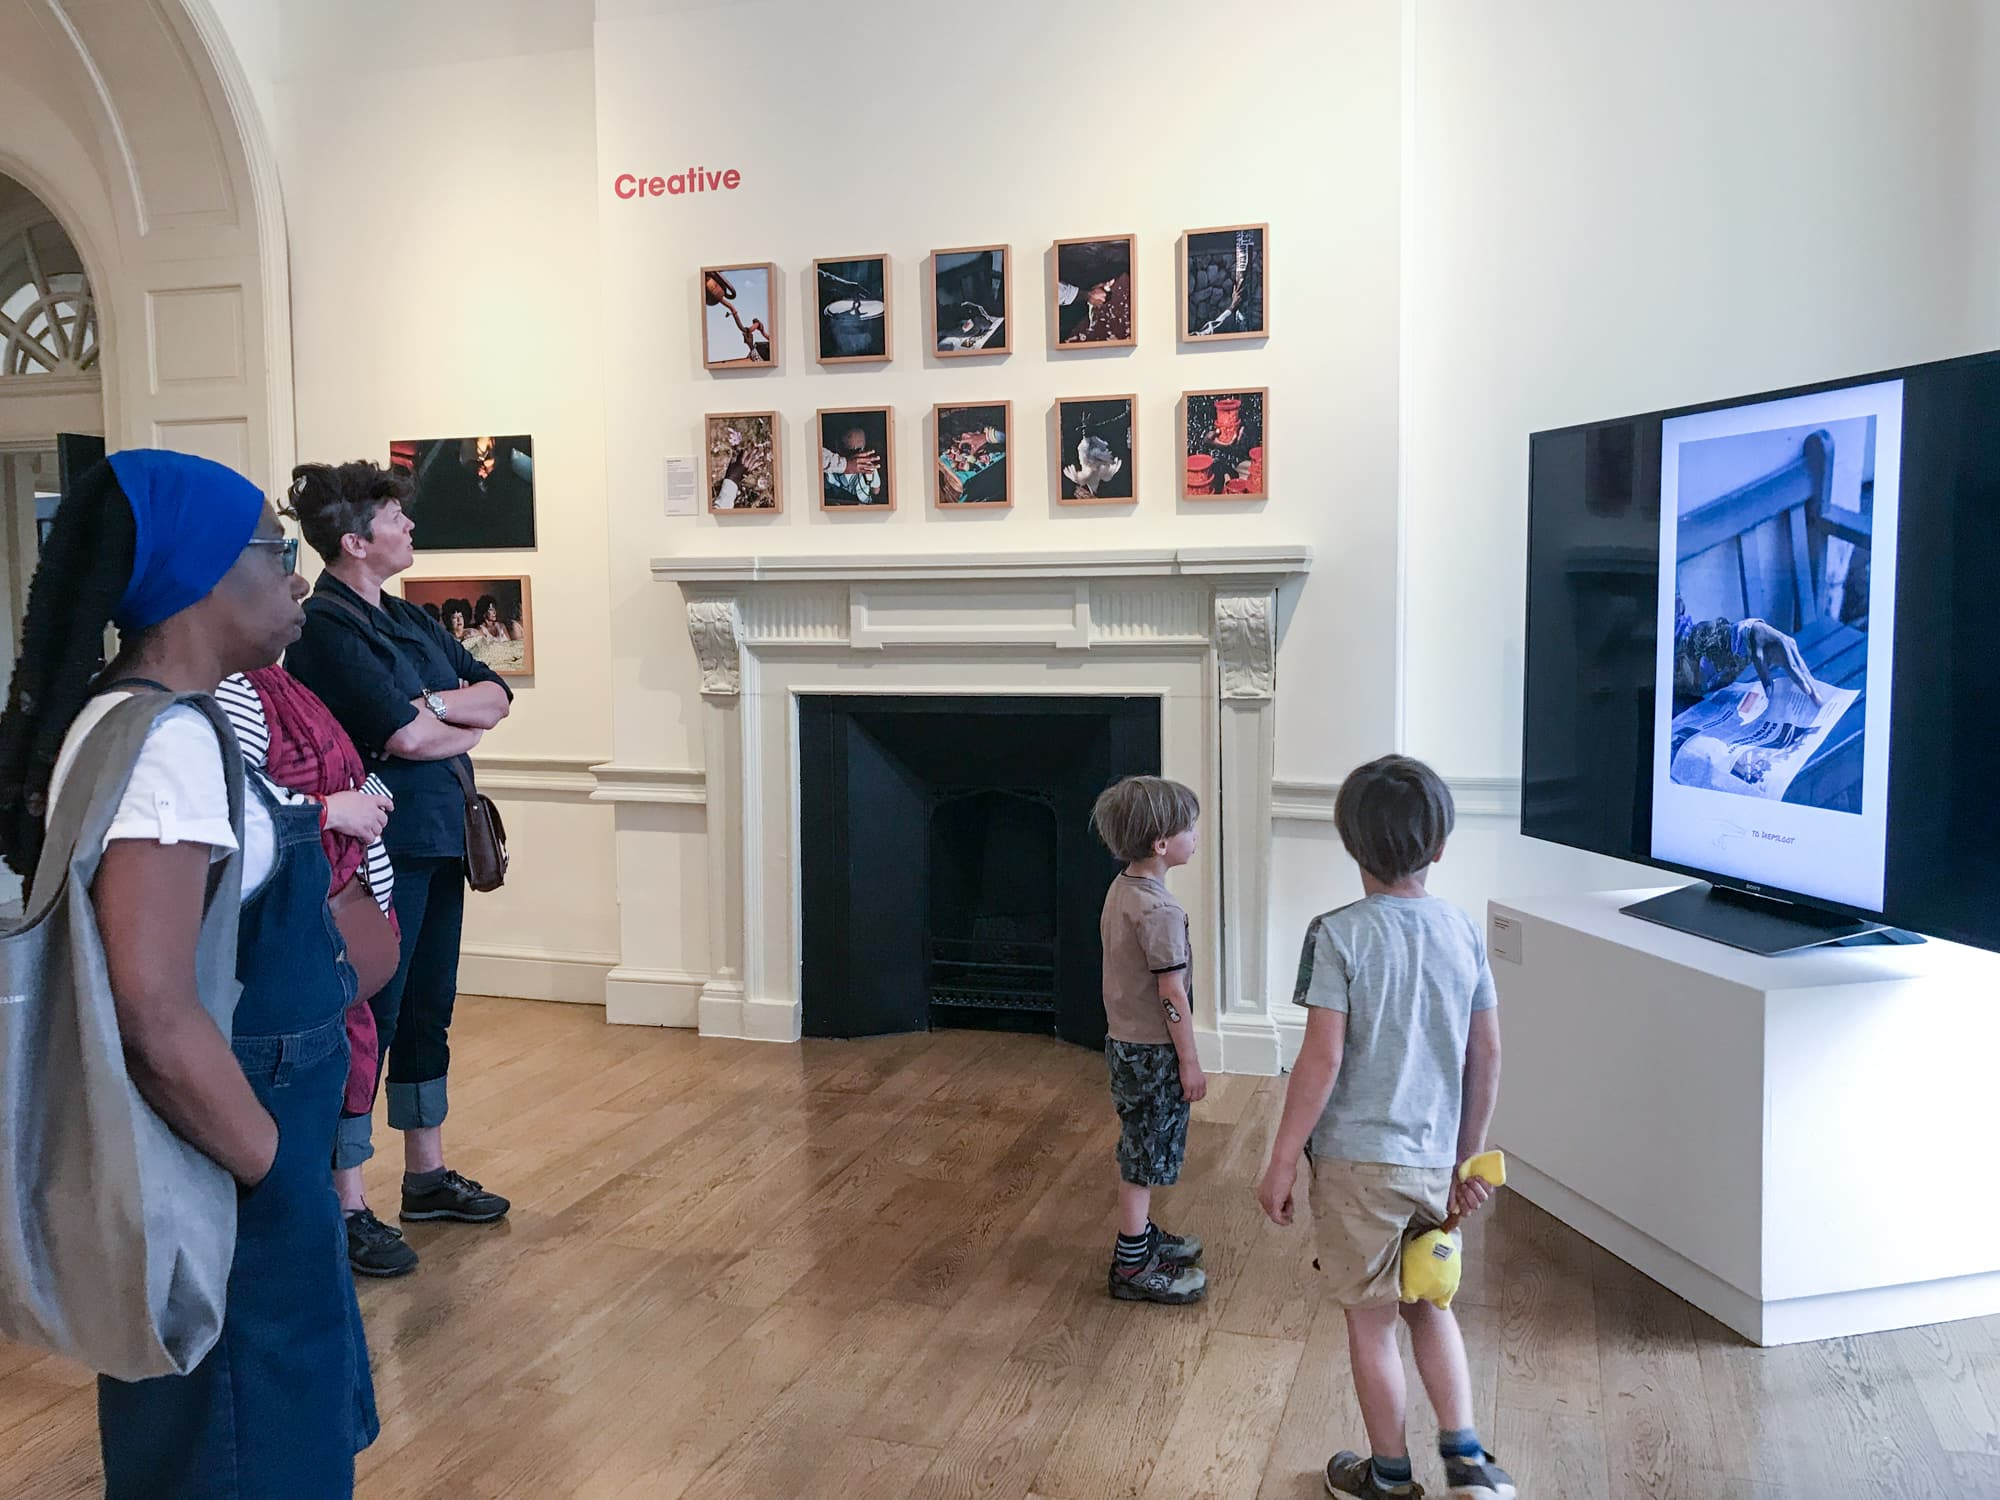 """Exhibition of """"How to get home"""" at Somerset House, London, for the Sony World Photo Award 2018, Category Creative."""